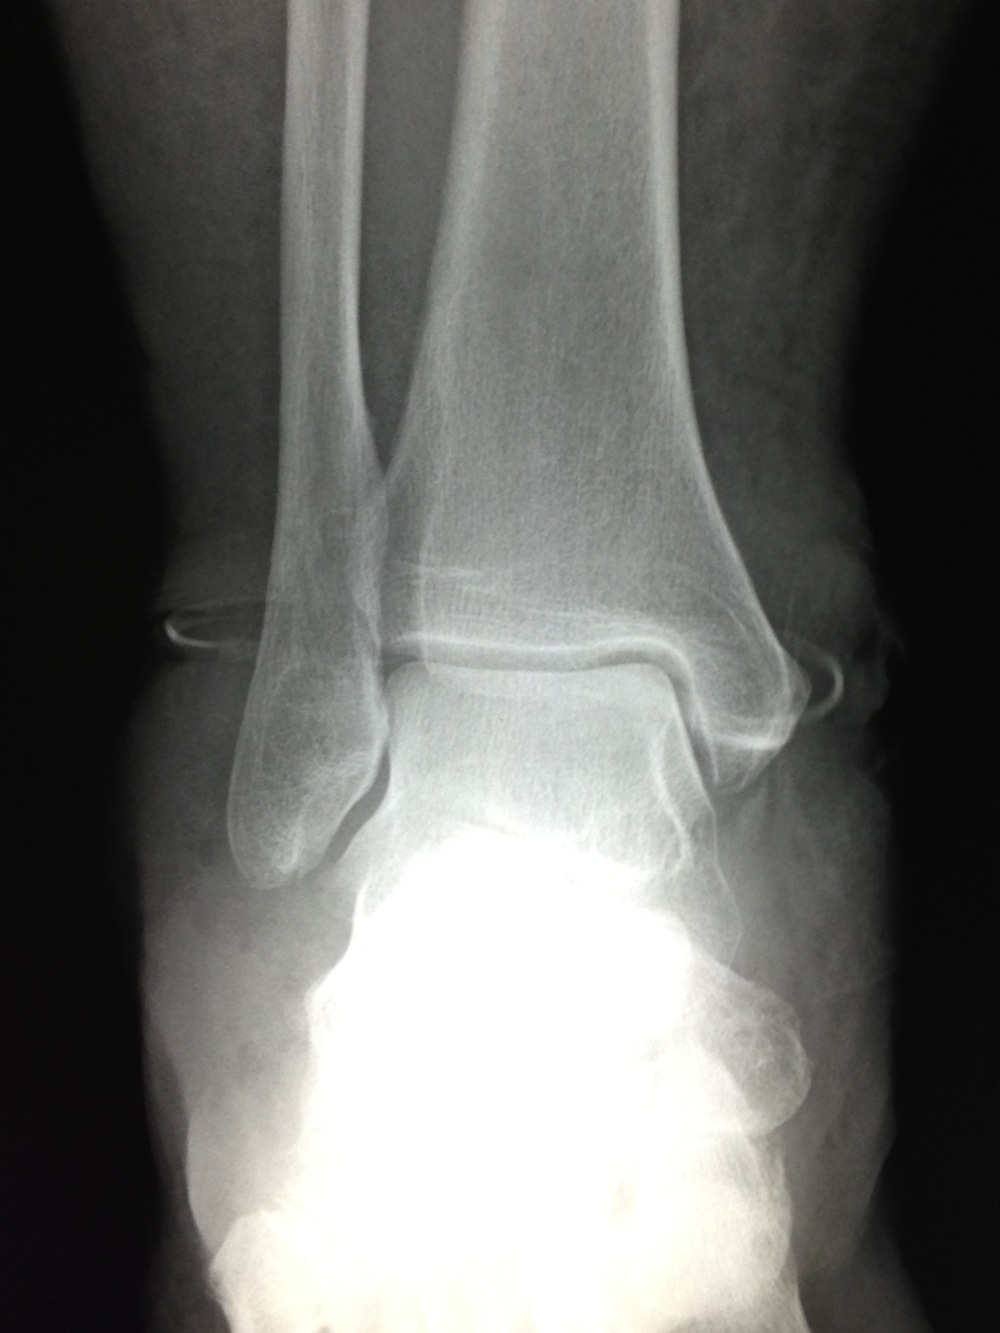 X-rays were taken and it looks like there is a halo or ring around the ankle